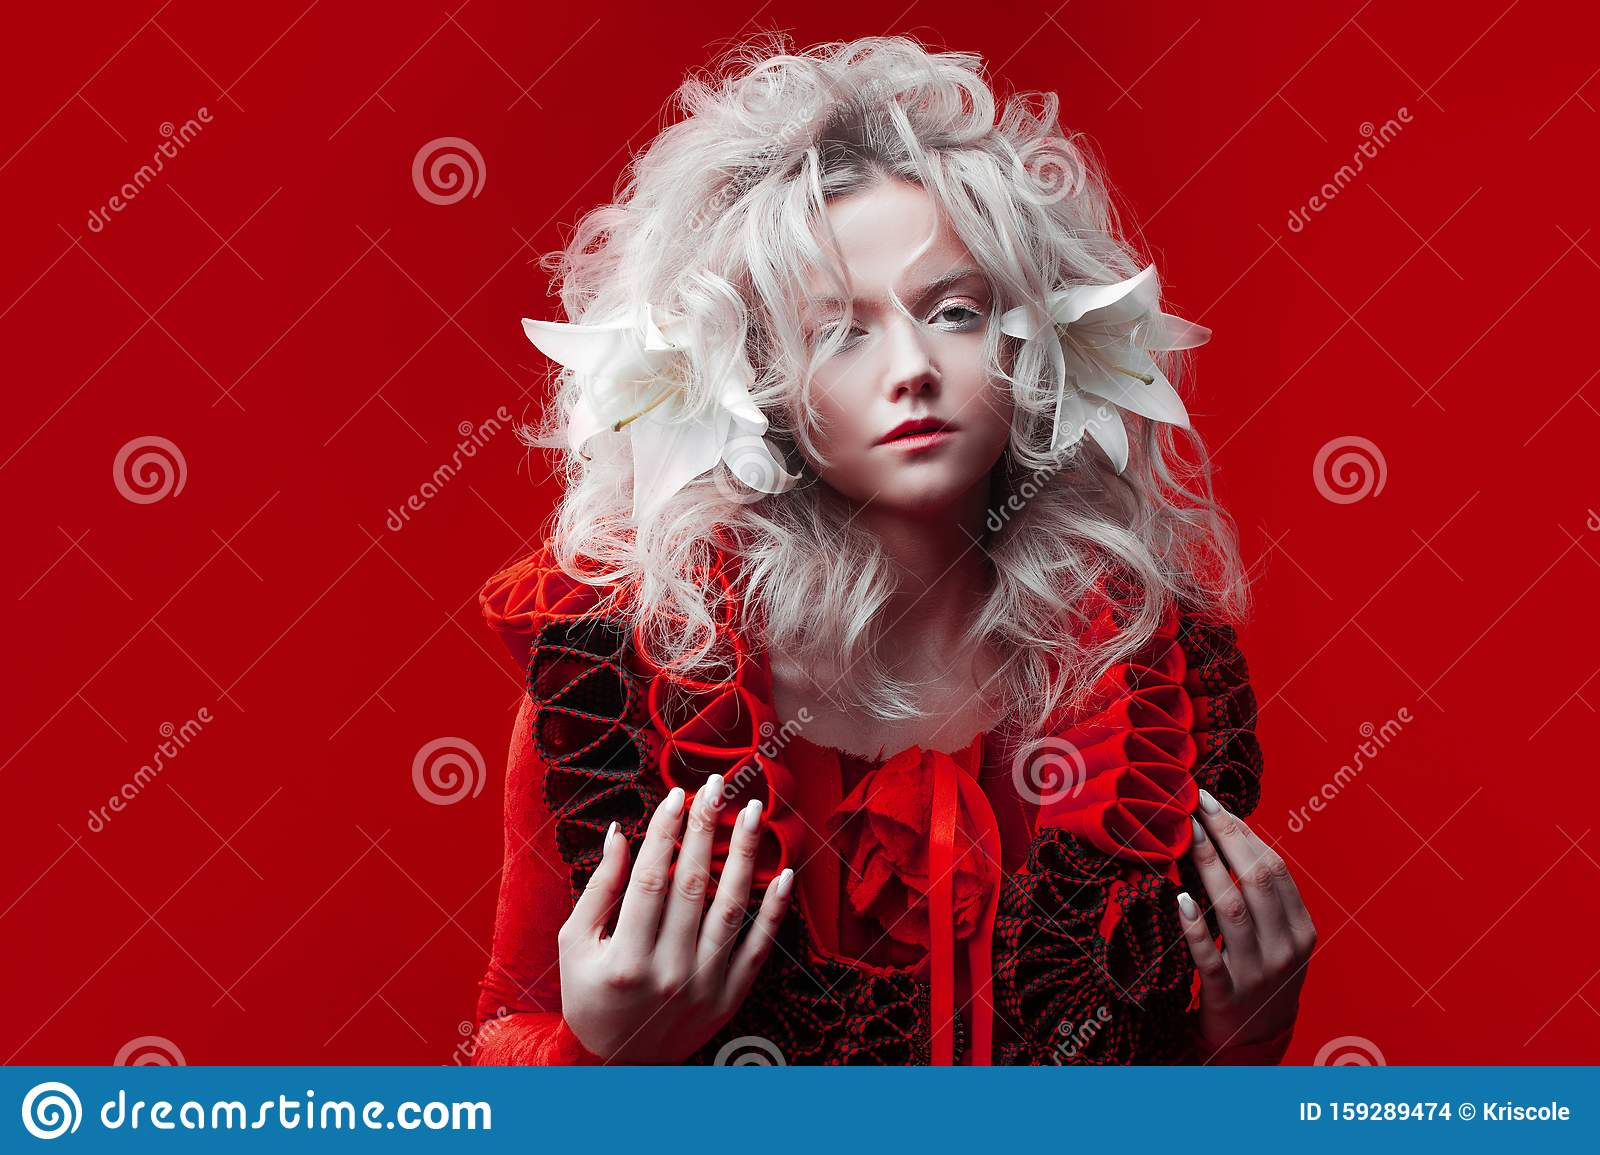 Shades Of Red Strange Attractive Woman In A Red Outfit On A Red Background With Lily Flowers In Her Hair Stock Photo Image Of Female Couture 159289474